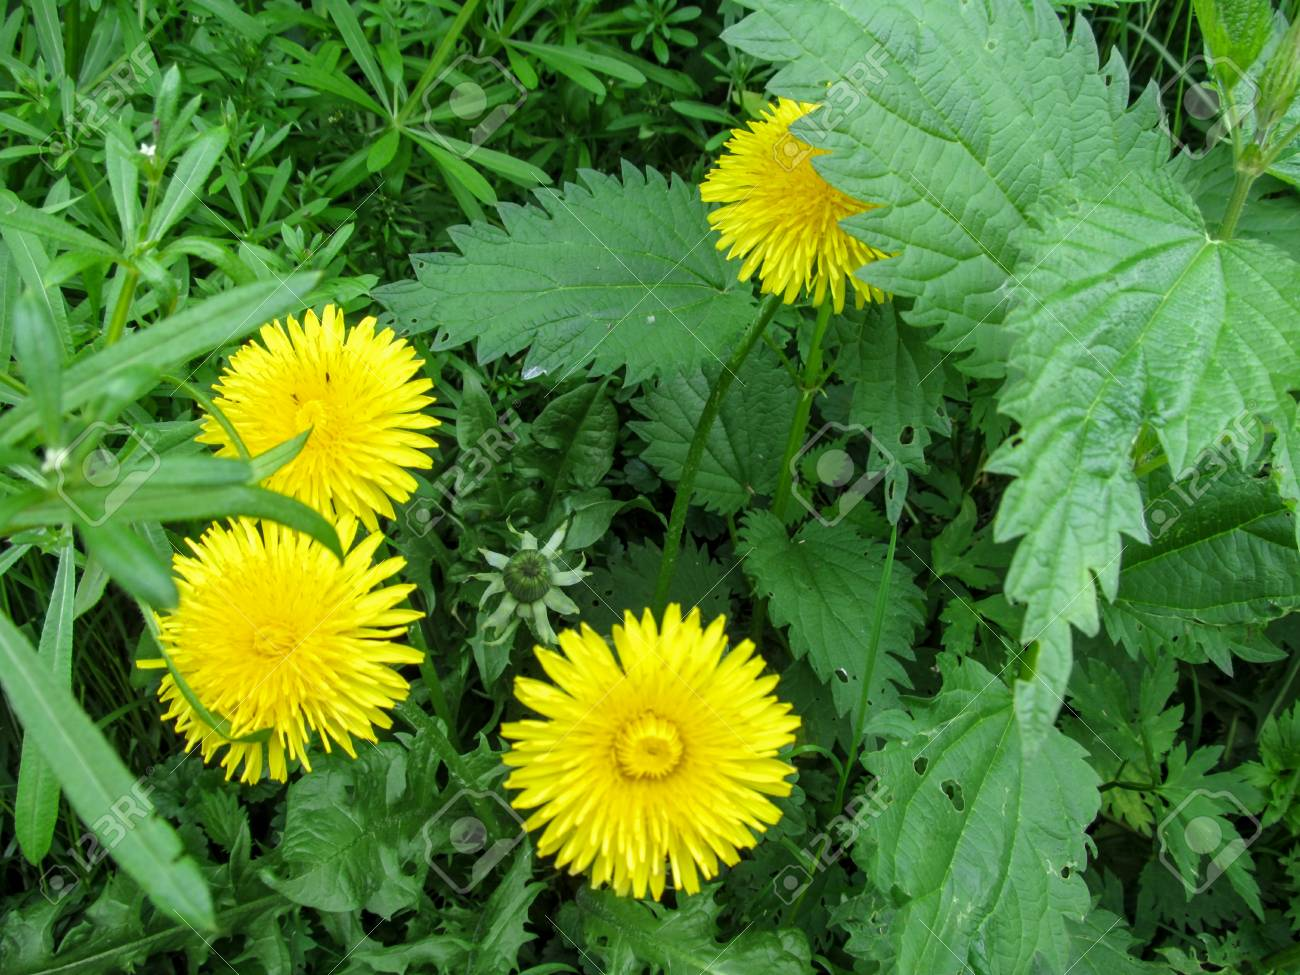 Four Brightly Yellow Dandelion Flowers Like The Suns Among The